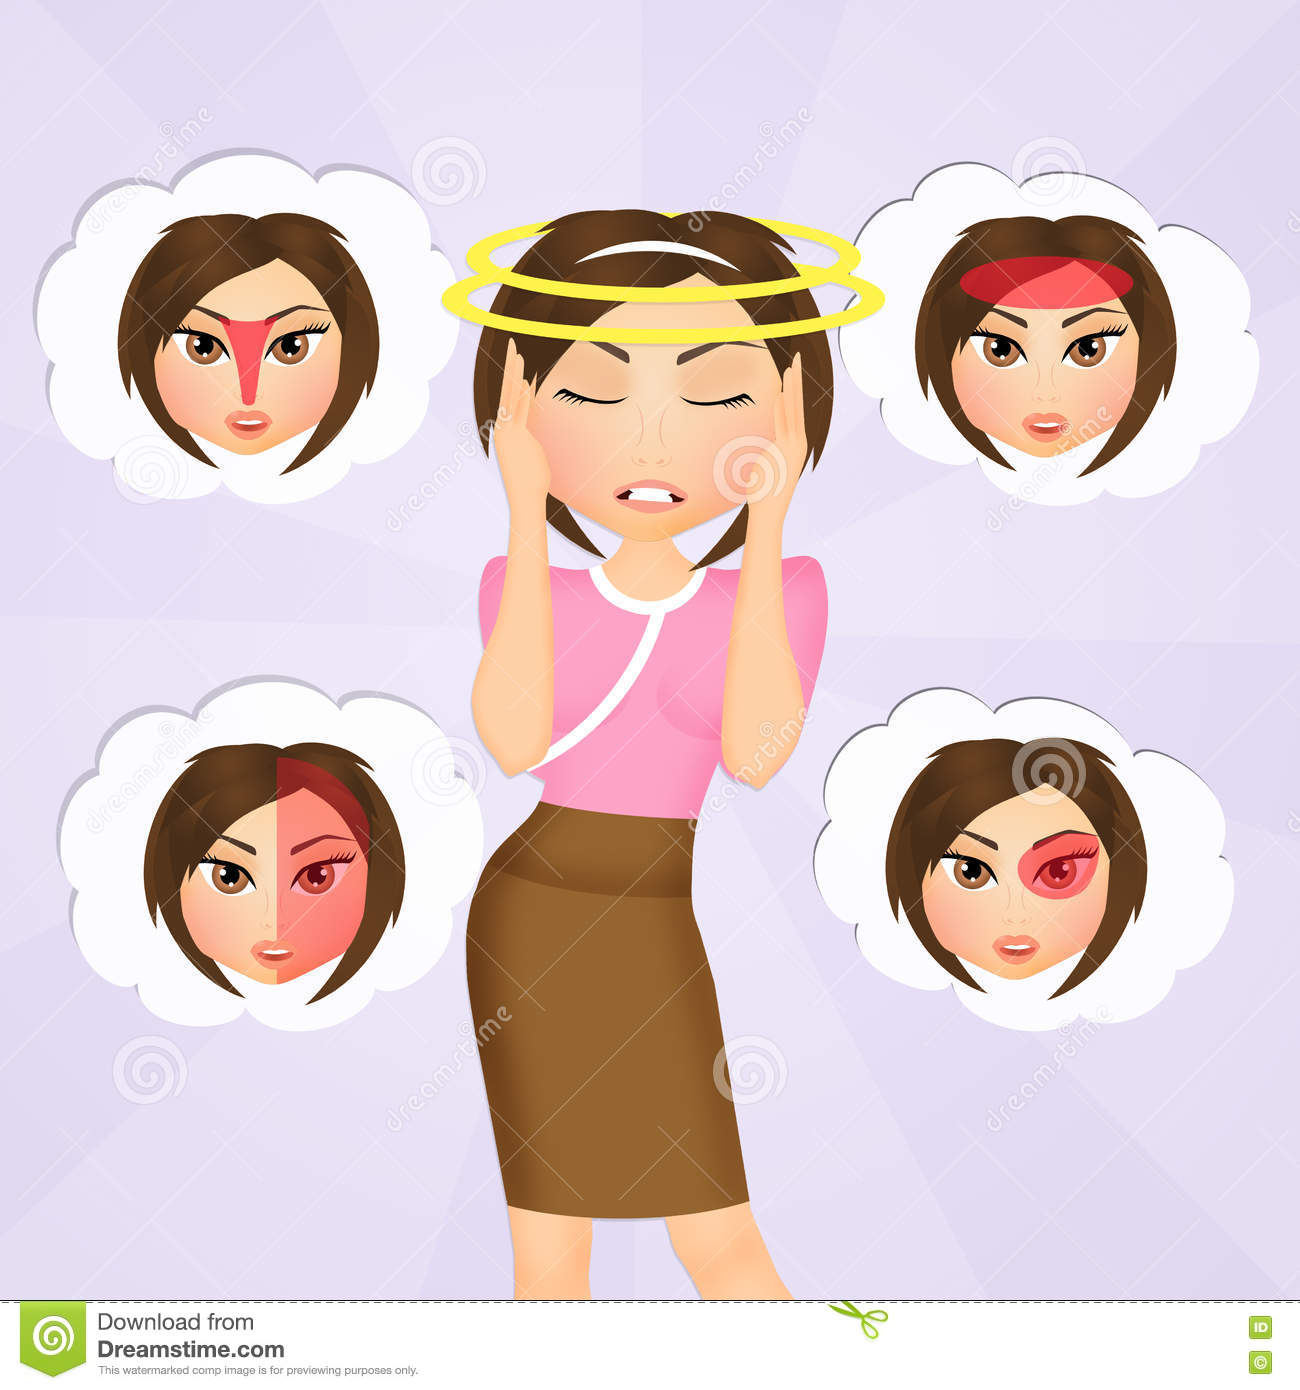 Illustration about headaches 4 type on different area of patient various types of headaches stock photography pooptronica Image collections